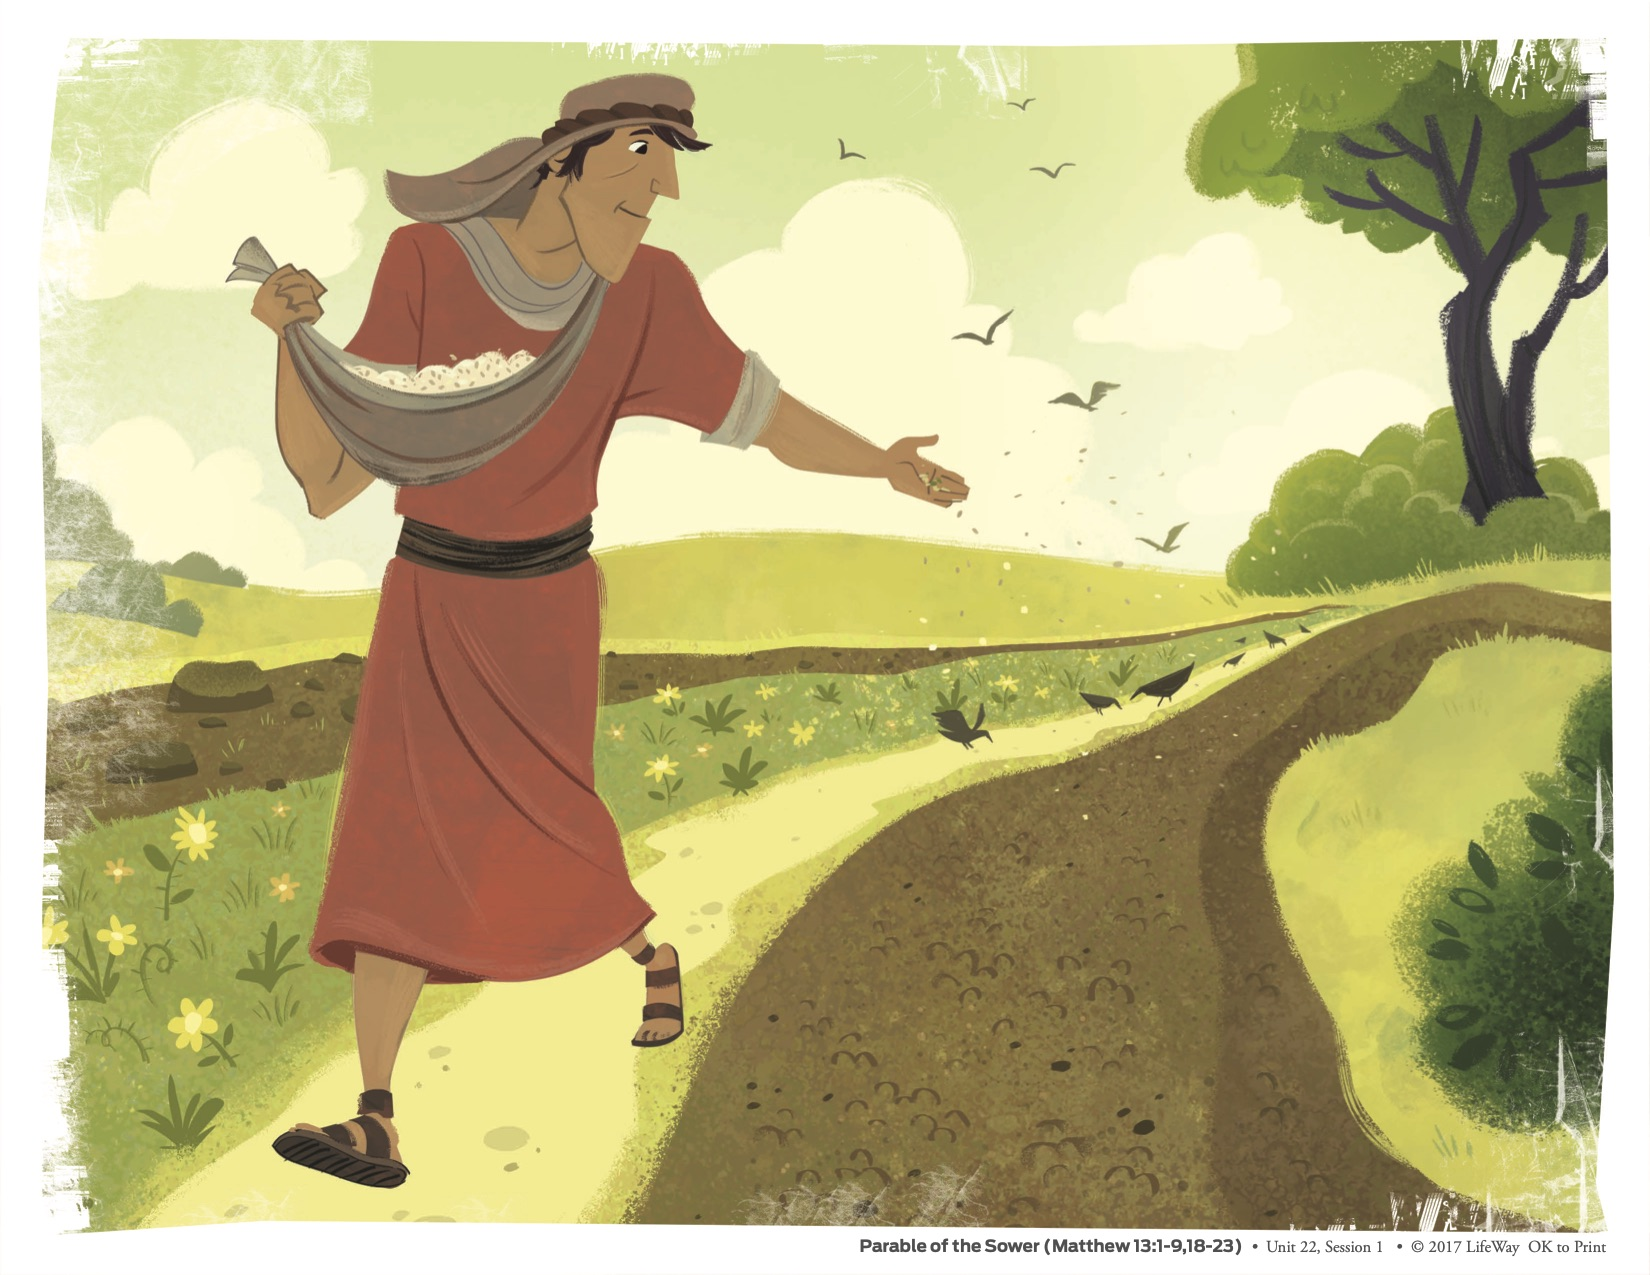 070520-Parable of the Sower